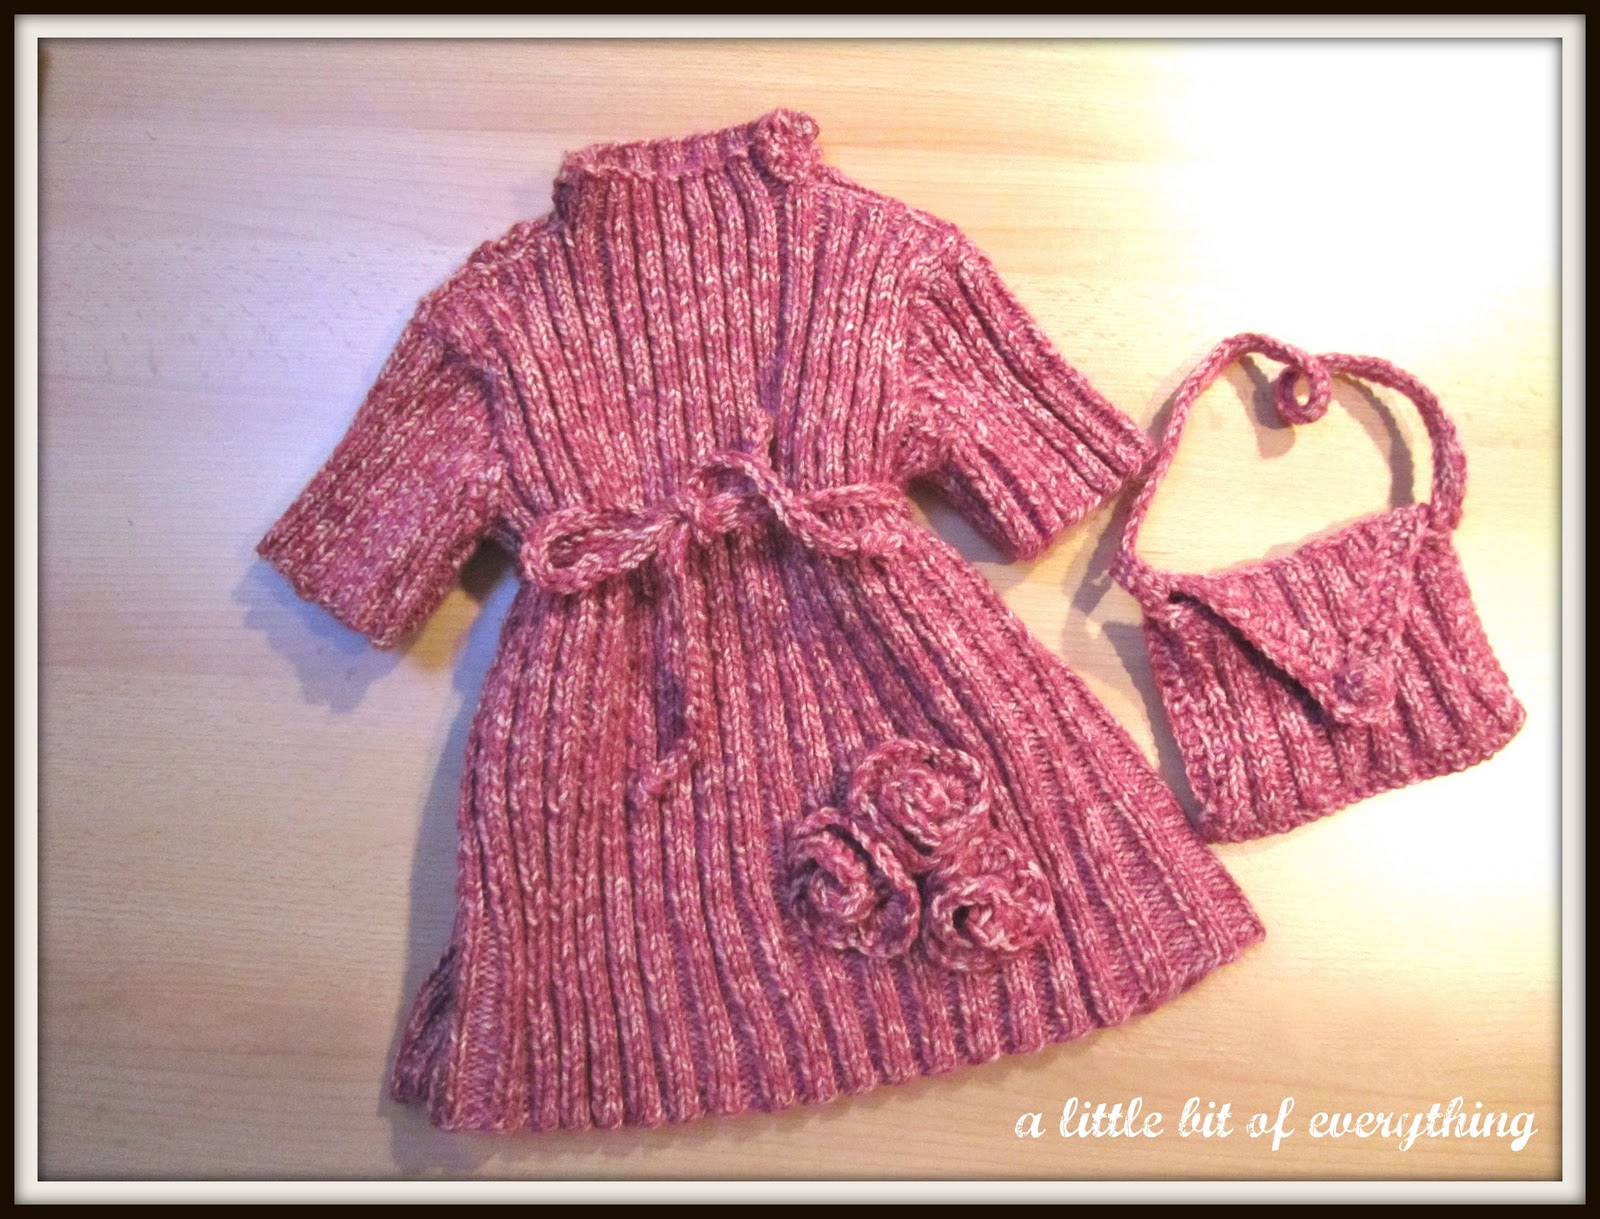 Knitting Patterns Database Apk : Needlework: Knitted Baby Dress